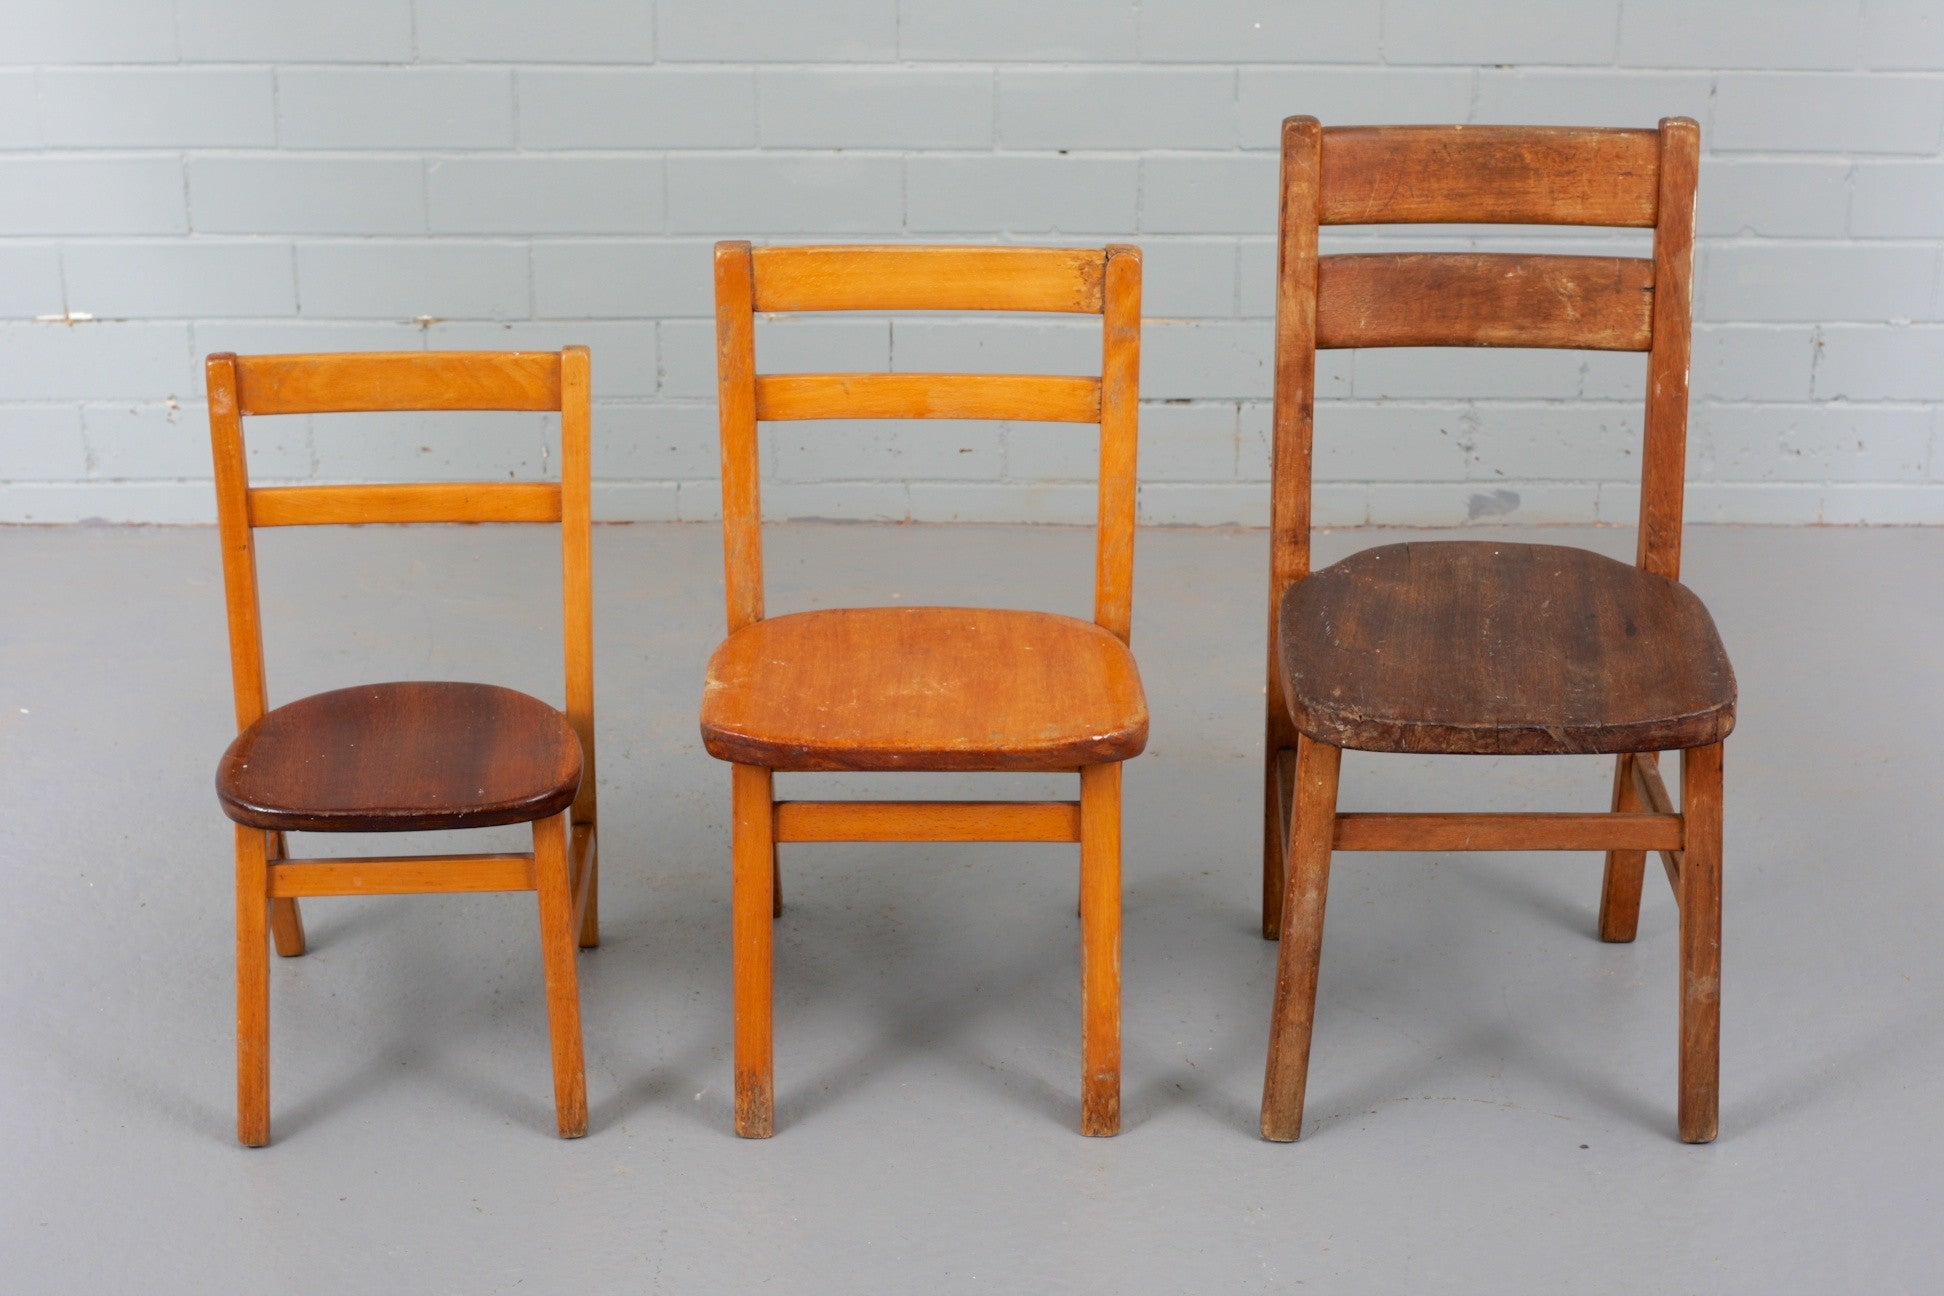 elementary vintage manufacturers of large metal suppliers wood and envoy plastic at full exceptional no lovely photo com school chair home chairs size alibaba furniture